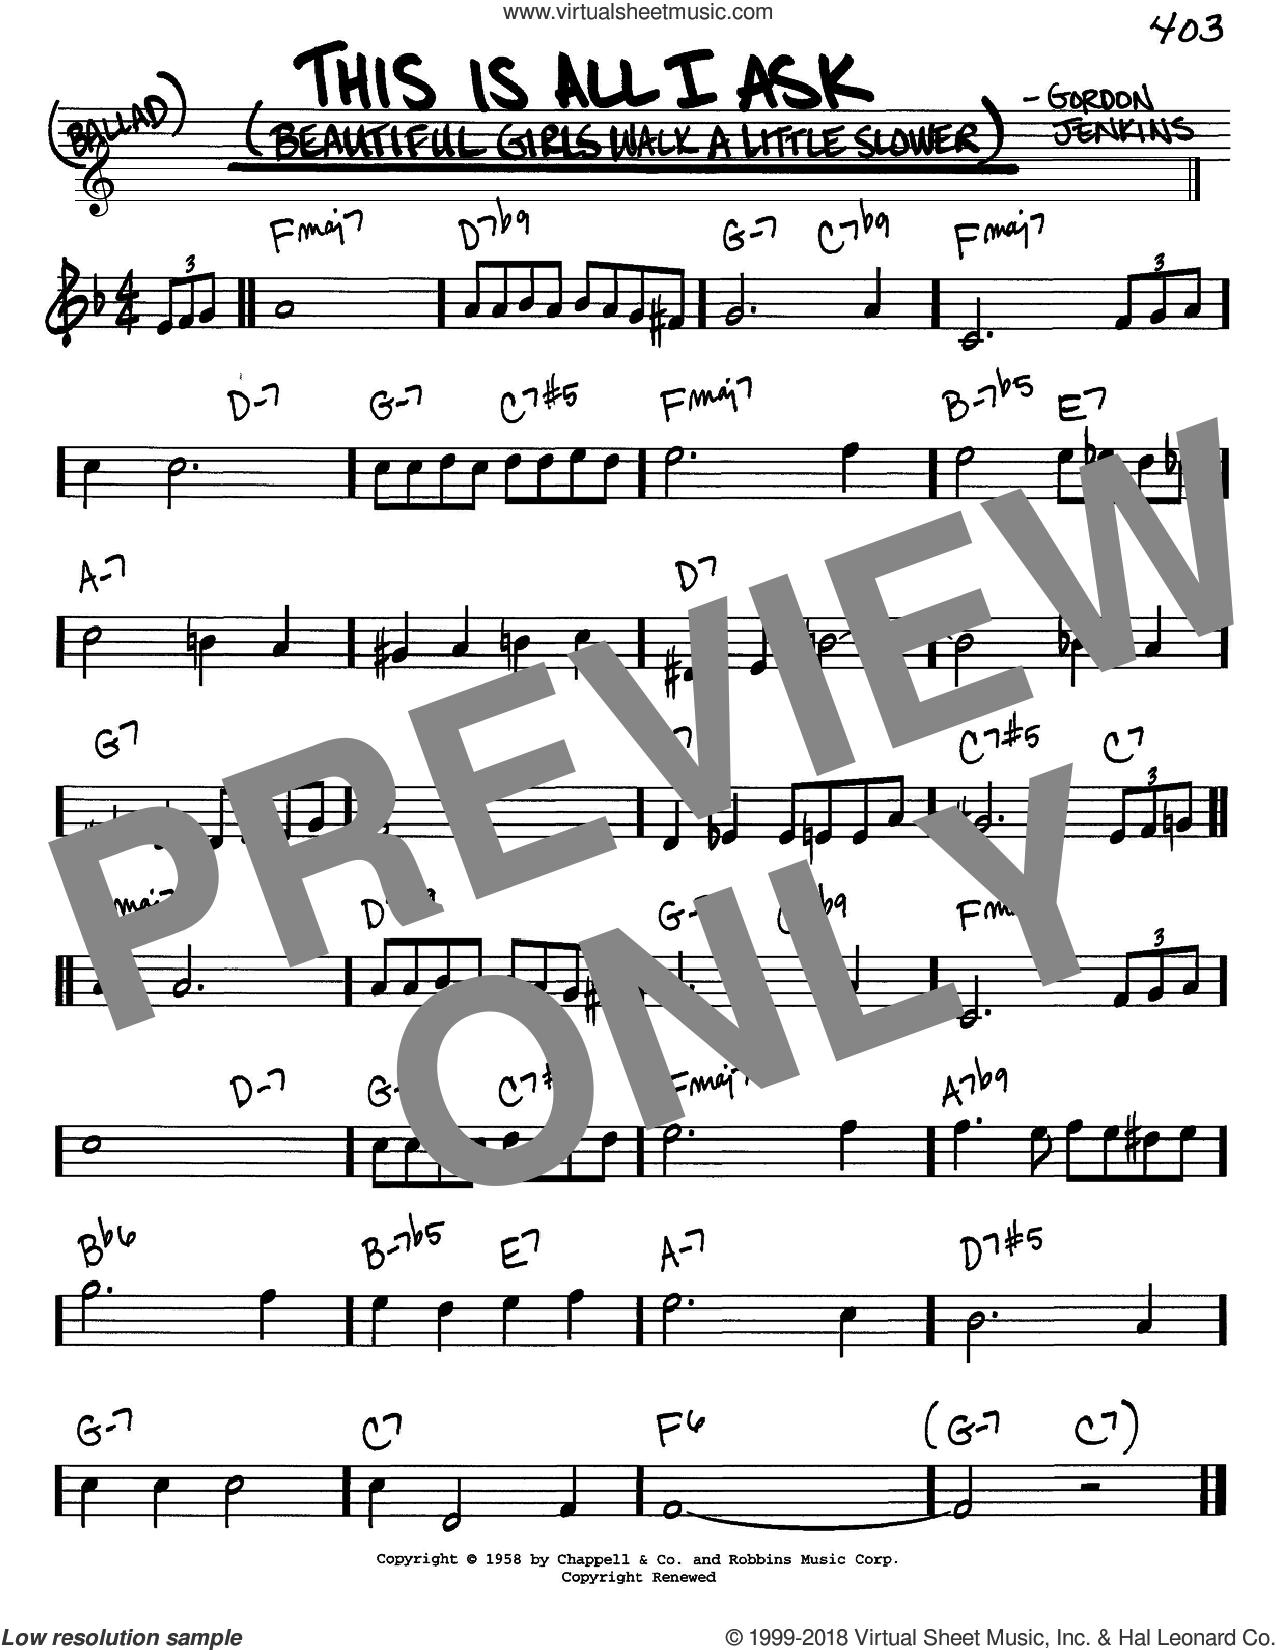 This Is All I Ask (Beautiful Girls Walk A Little Slower) sheet music for voice and other instruments (C) by Gordon Jenkins. Score Image Preview.